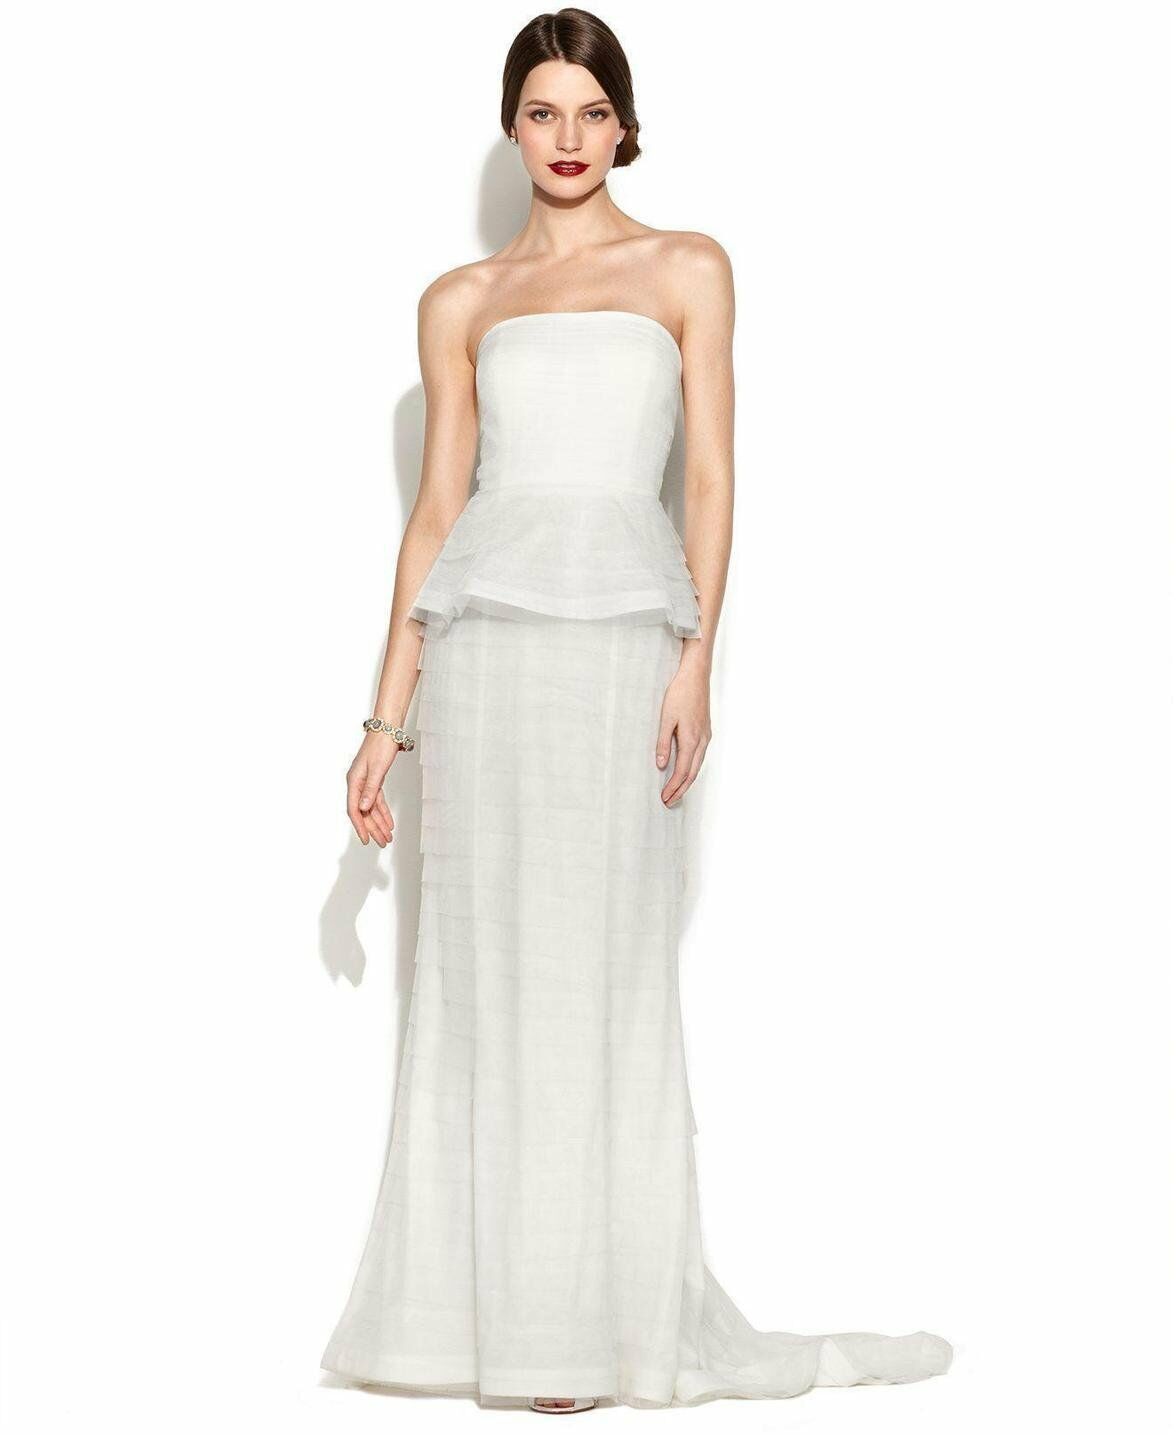 0882039d0e3 Adrianna Papell Ivory Strapless Tiered Peplum Gown Size 16 NWT Wedding  Bridal